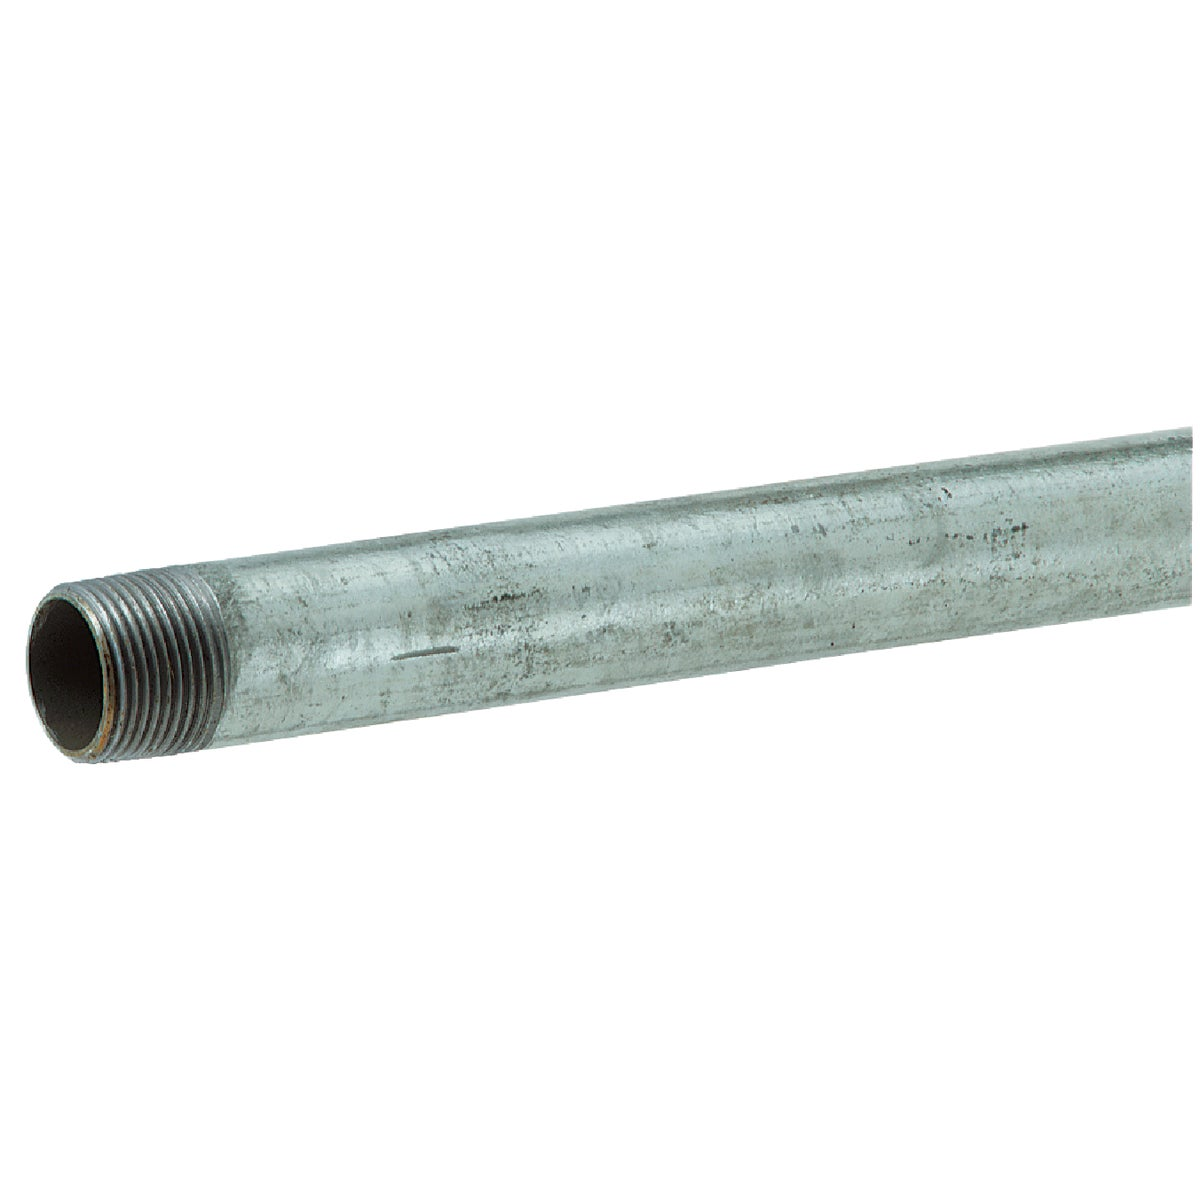 1X30 GALV RDI-CT PIPE - 1X30 by Southland Pipe Nippl